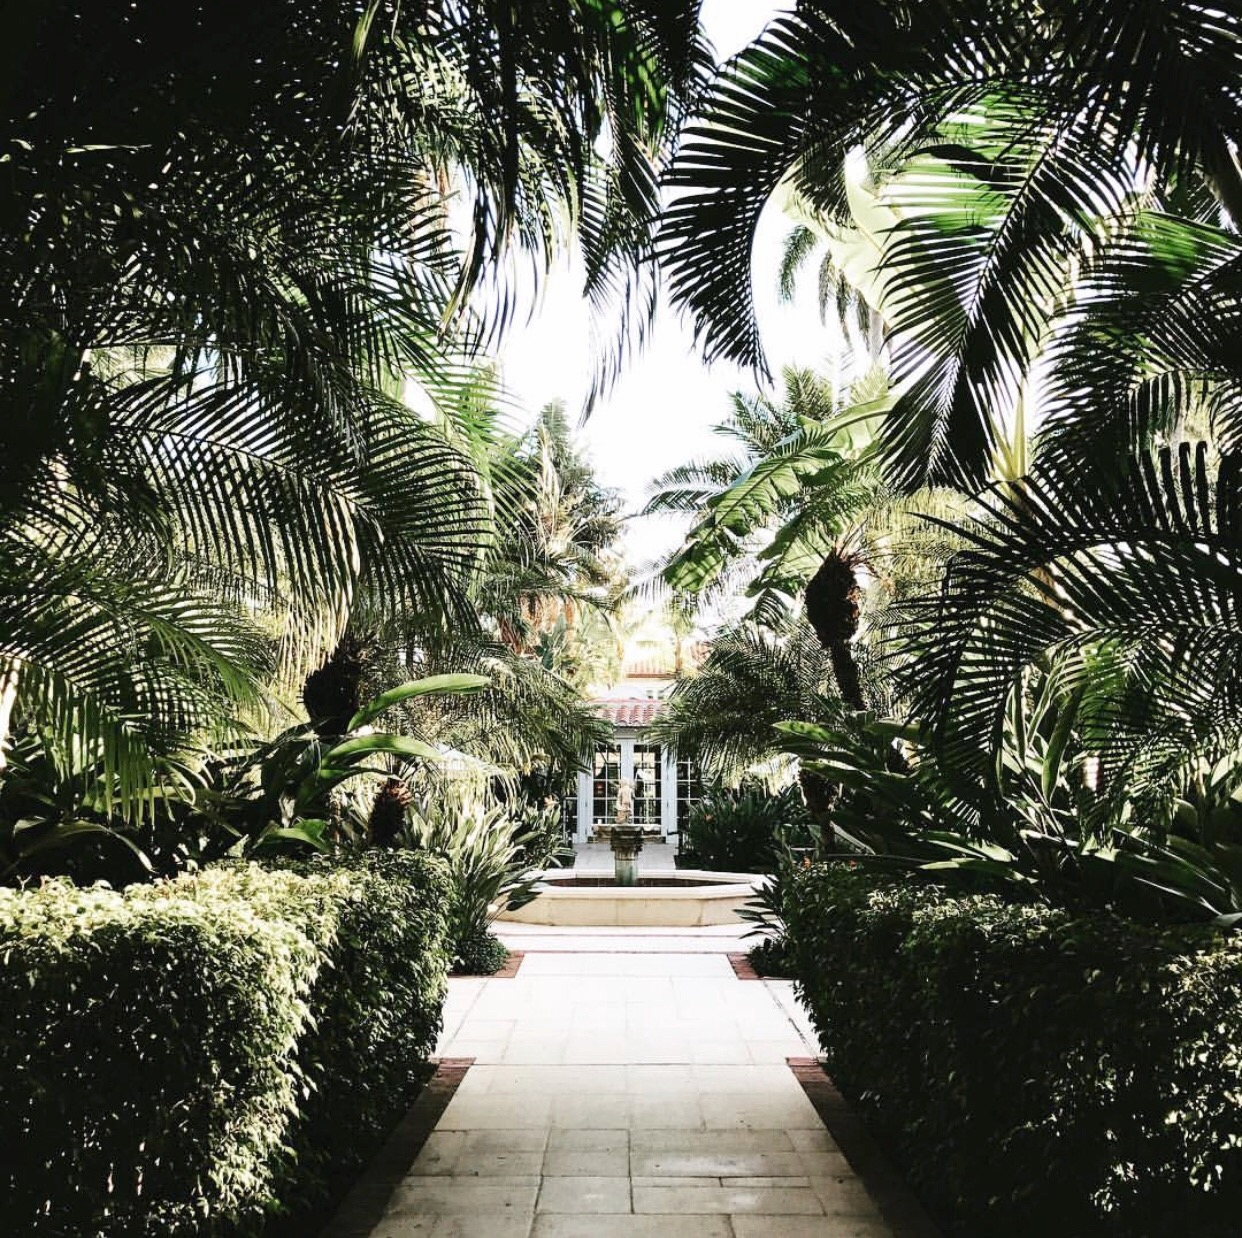 How stunning is this vegetation at The Brazilian Court Hotel?